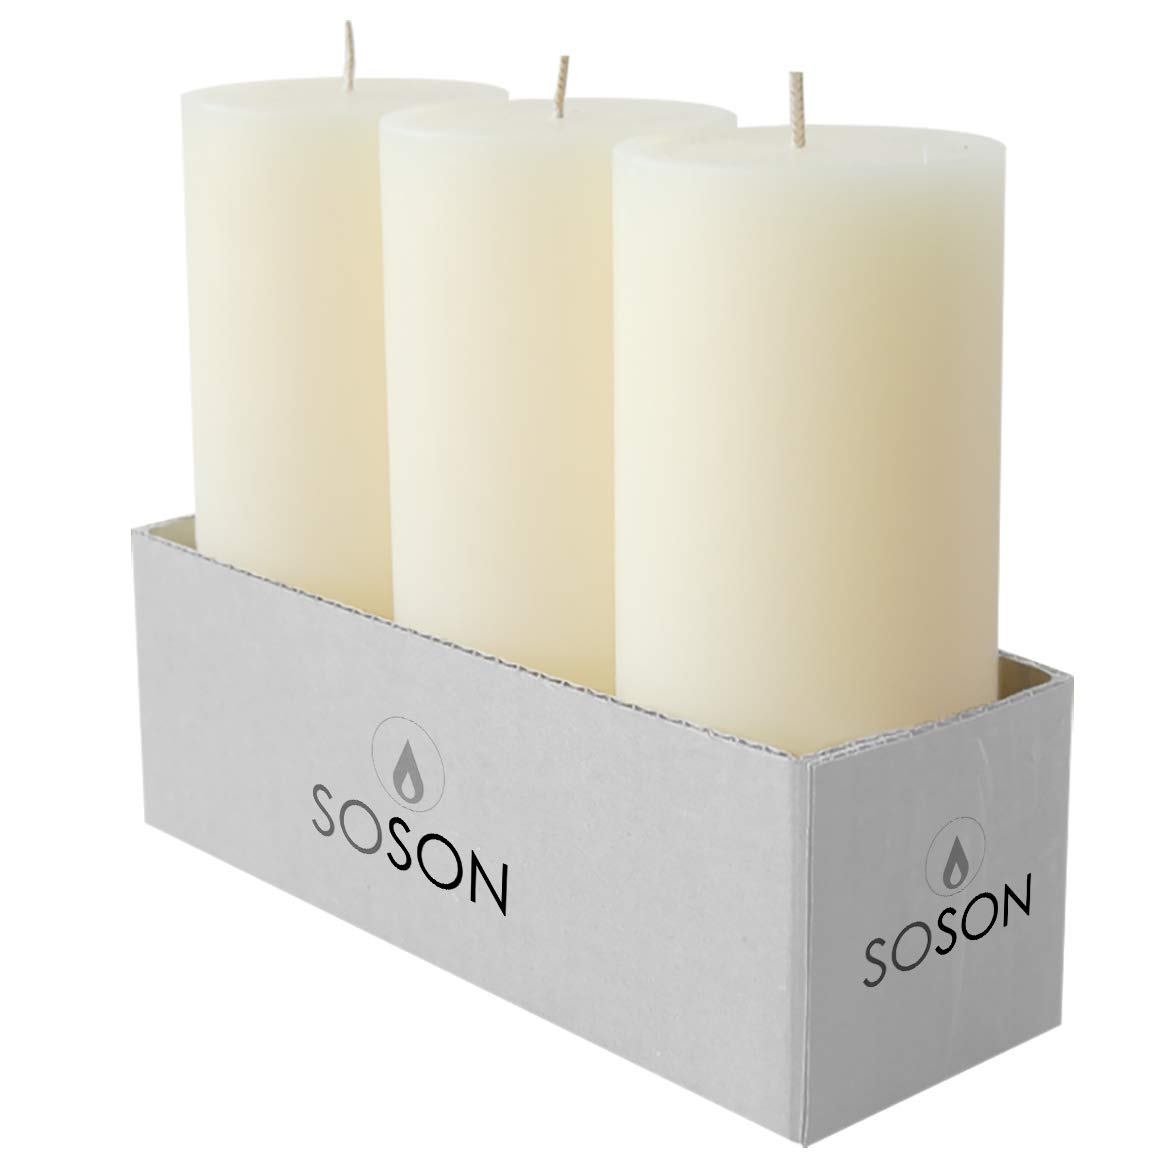 Simply Soson 6 Ivory Pillar Candles 3x6 | unscented Pillar Candles | Dripless Pillar Candles Bulk (6 Pack) Code 2258 by Simply Soson (Image #2)